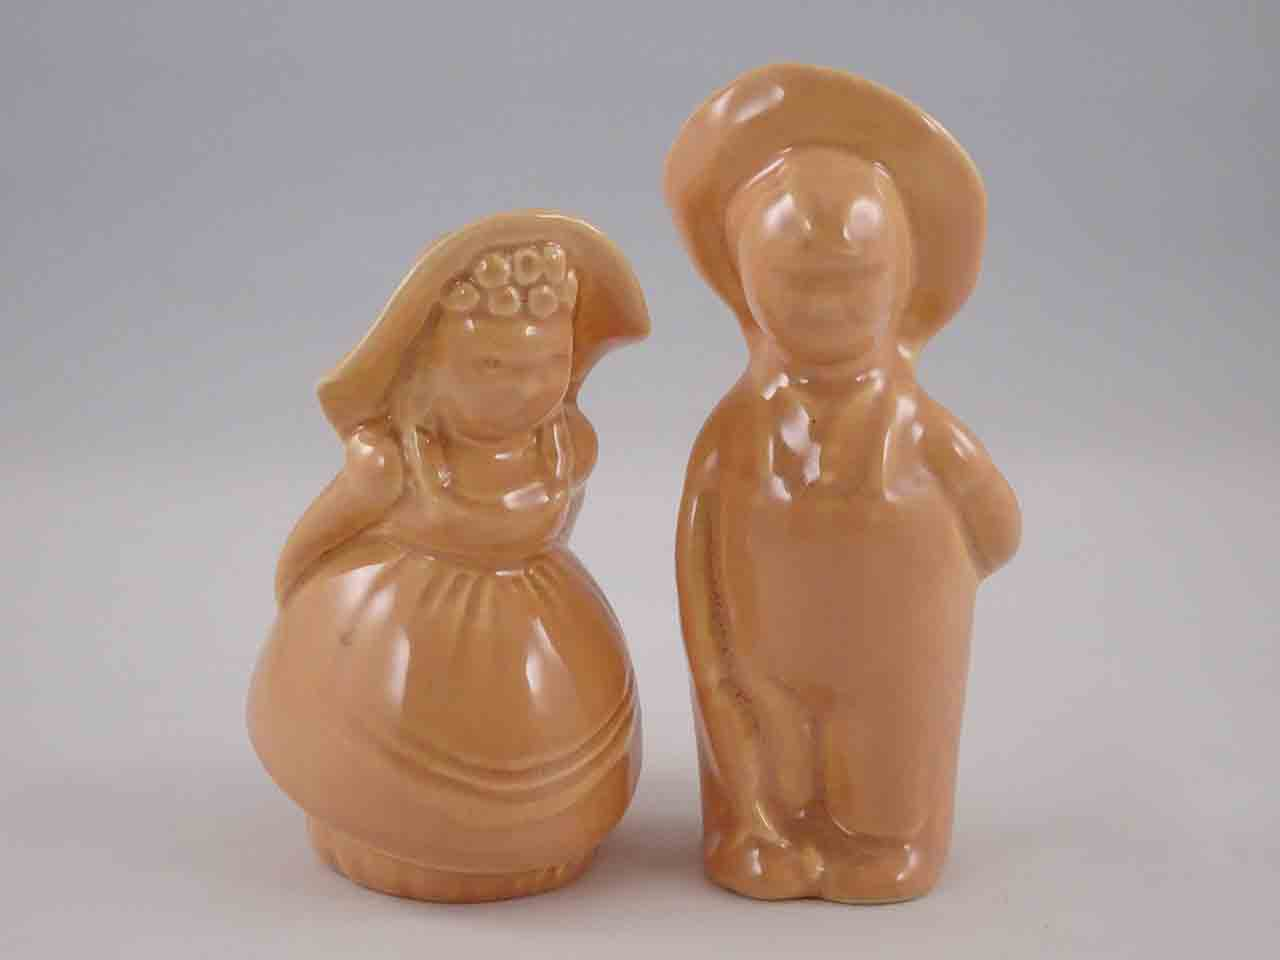 Pacific farmer & wife salt and pepper shakers